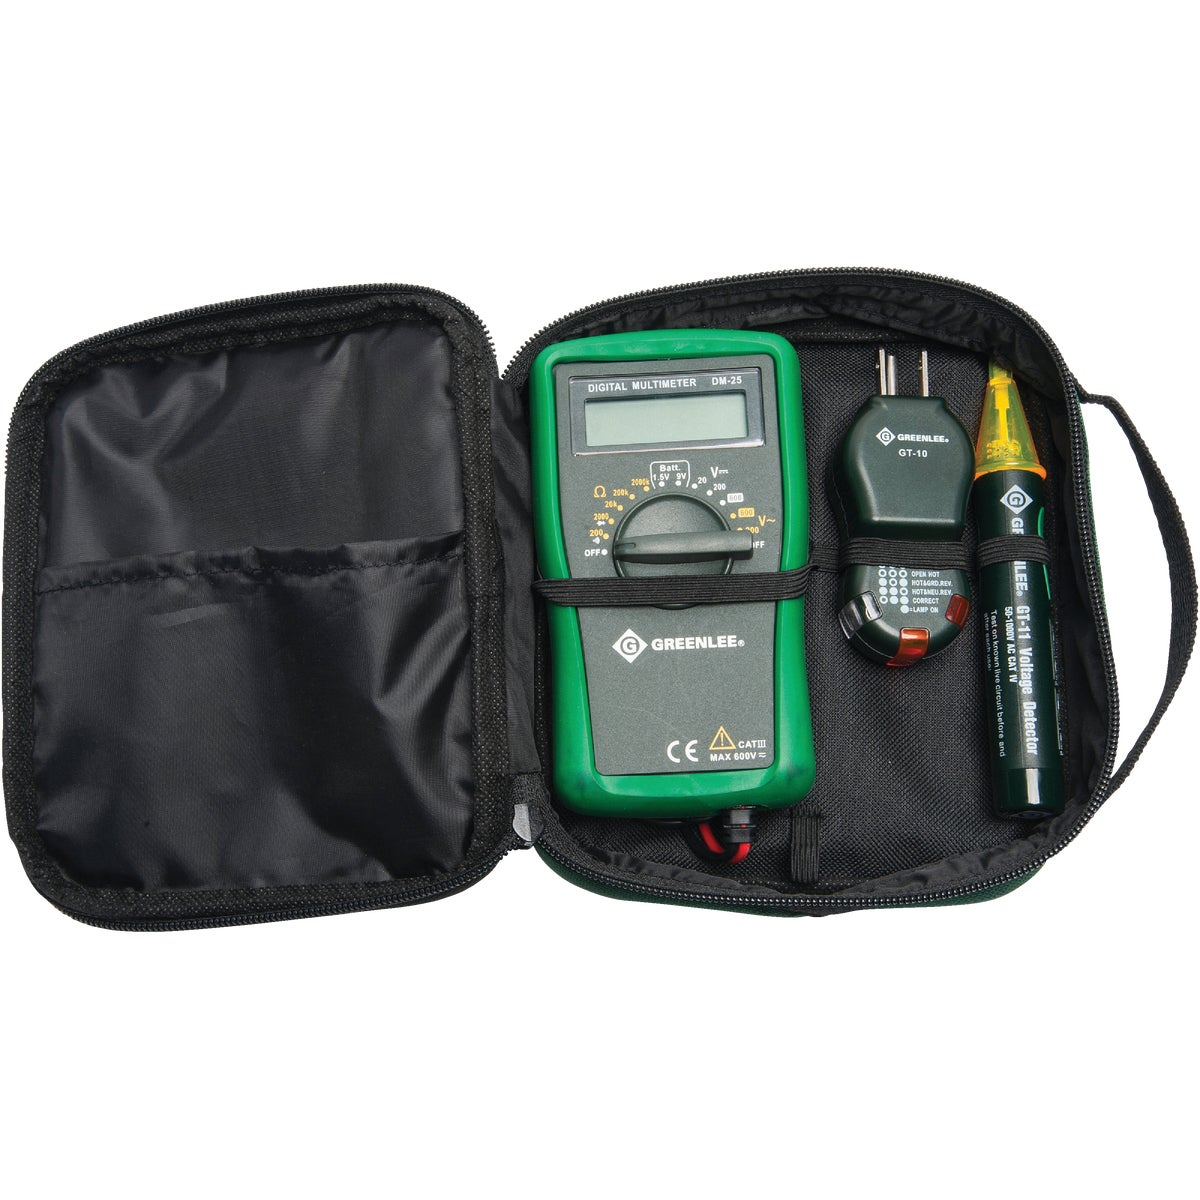 MULTIMETER KIT W/CASE - TK30A by Greenlee Textron